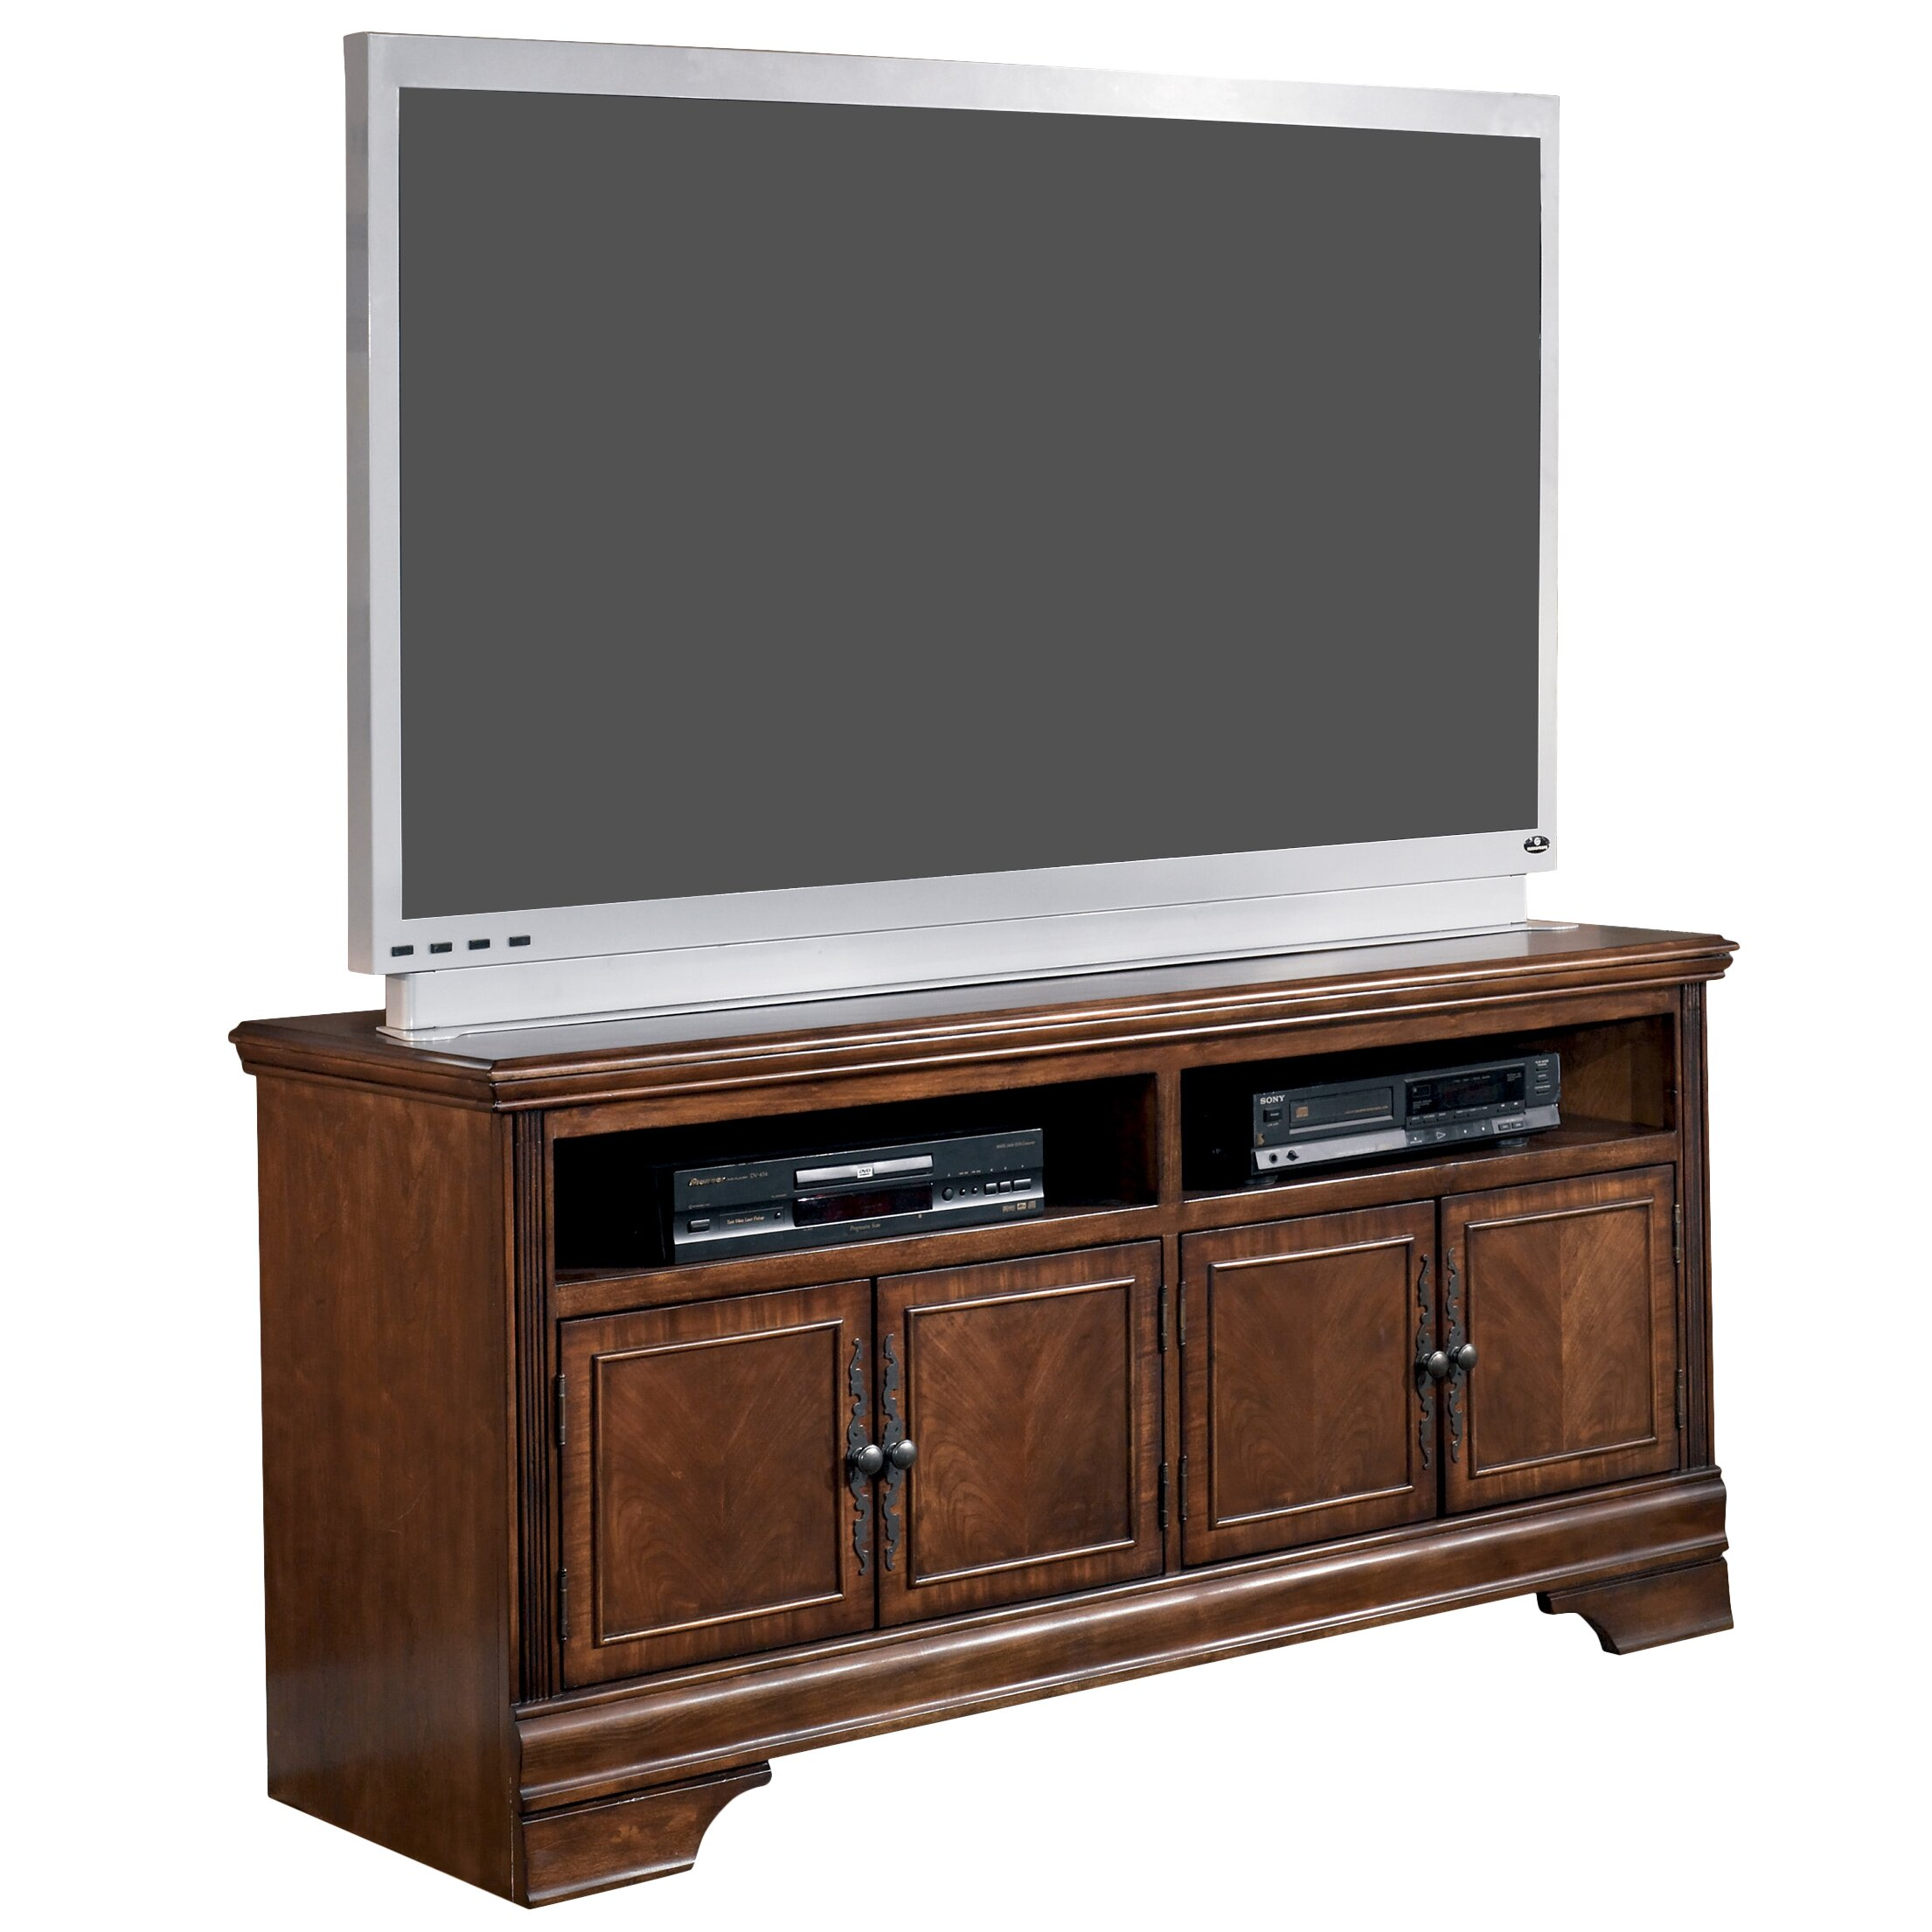 Darby Home Co Busse Tv Stand Reviews Wayfair